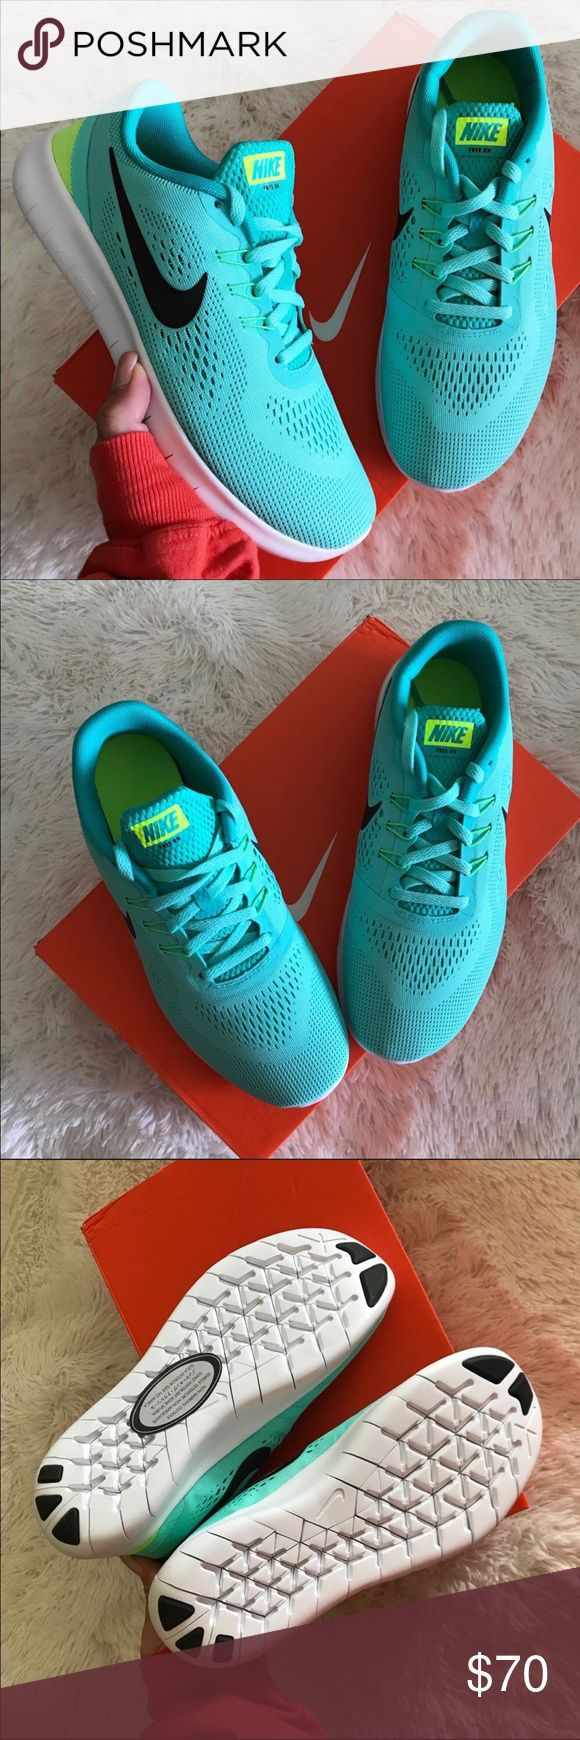 NEW 💠 NIKE FREE SZ 6.5 youth | FITS SZ 8 women BRAND NEW, NIKE FREE! Cute, cozy & comfy NIKES | LUXURIOUS TIFFANY COLOR! ✨💠 Original NIKE box no lid.   ORDER YOUR WOMANS SHOE SIZE 6.5 youth = 8 WOMEN  ALL SIZES LISTED ACCORDING TO NIKE'S SIZE CHART. PLEASE KNOW YOUR YOUTH SIZE PRIOR TO PURCHASING. ✨💠  Ships same or next day from my smoke free home.   PRICED FIRM, offers will be considered through the offer button only. Bundle to save. ✨ 💠  100% authentic & direct from NIKE Nike Shoes…